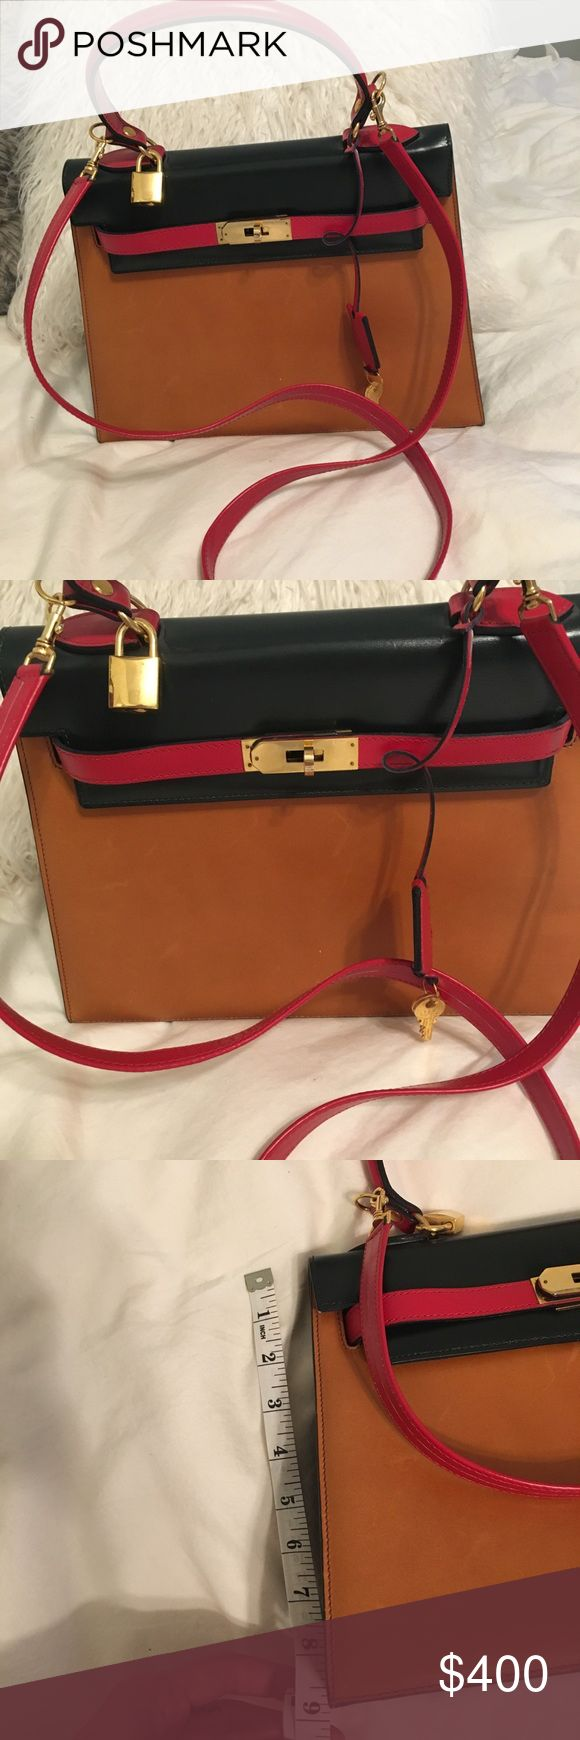 """Kelly Bag 9""""x11"""" Small handle depth: 4"""" Shoulder strap depth: 20"""" Some scratch marks  Made and purchased in France.  Pierre Guijarro Pierre Guijarro Bags Crossbody Bags"""